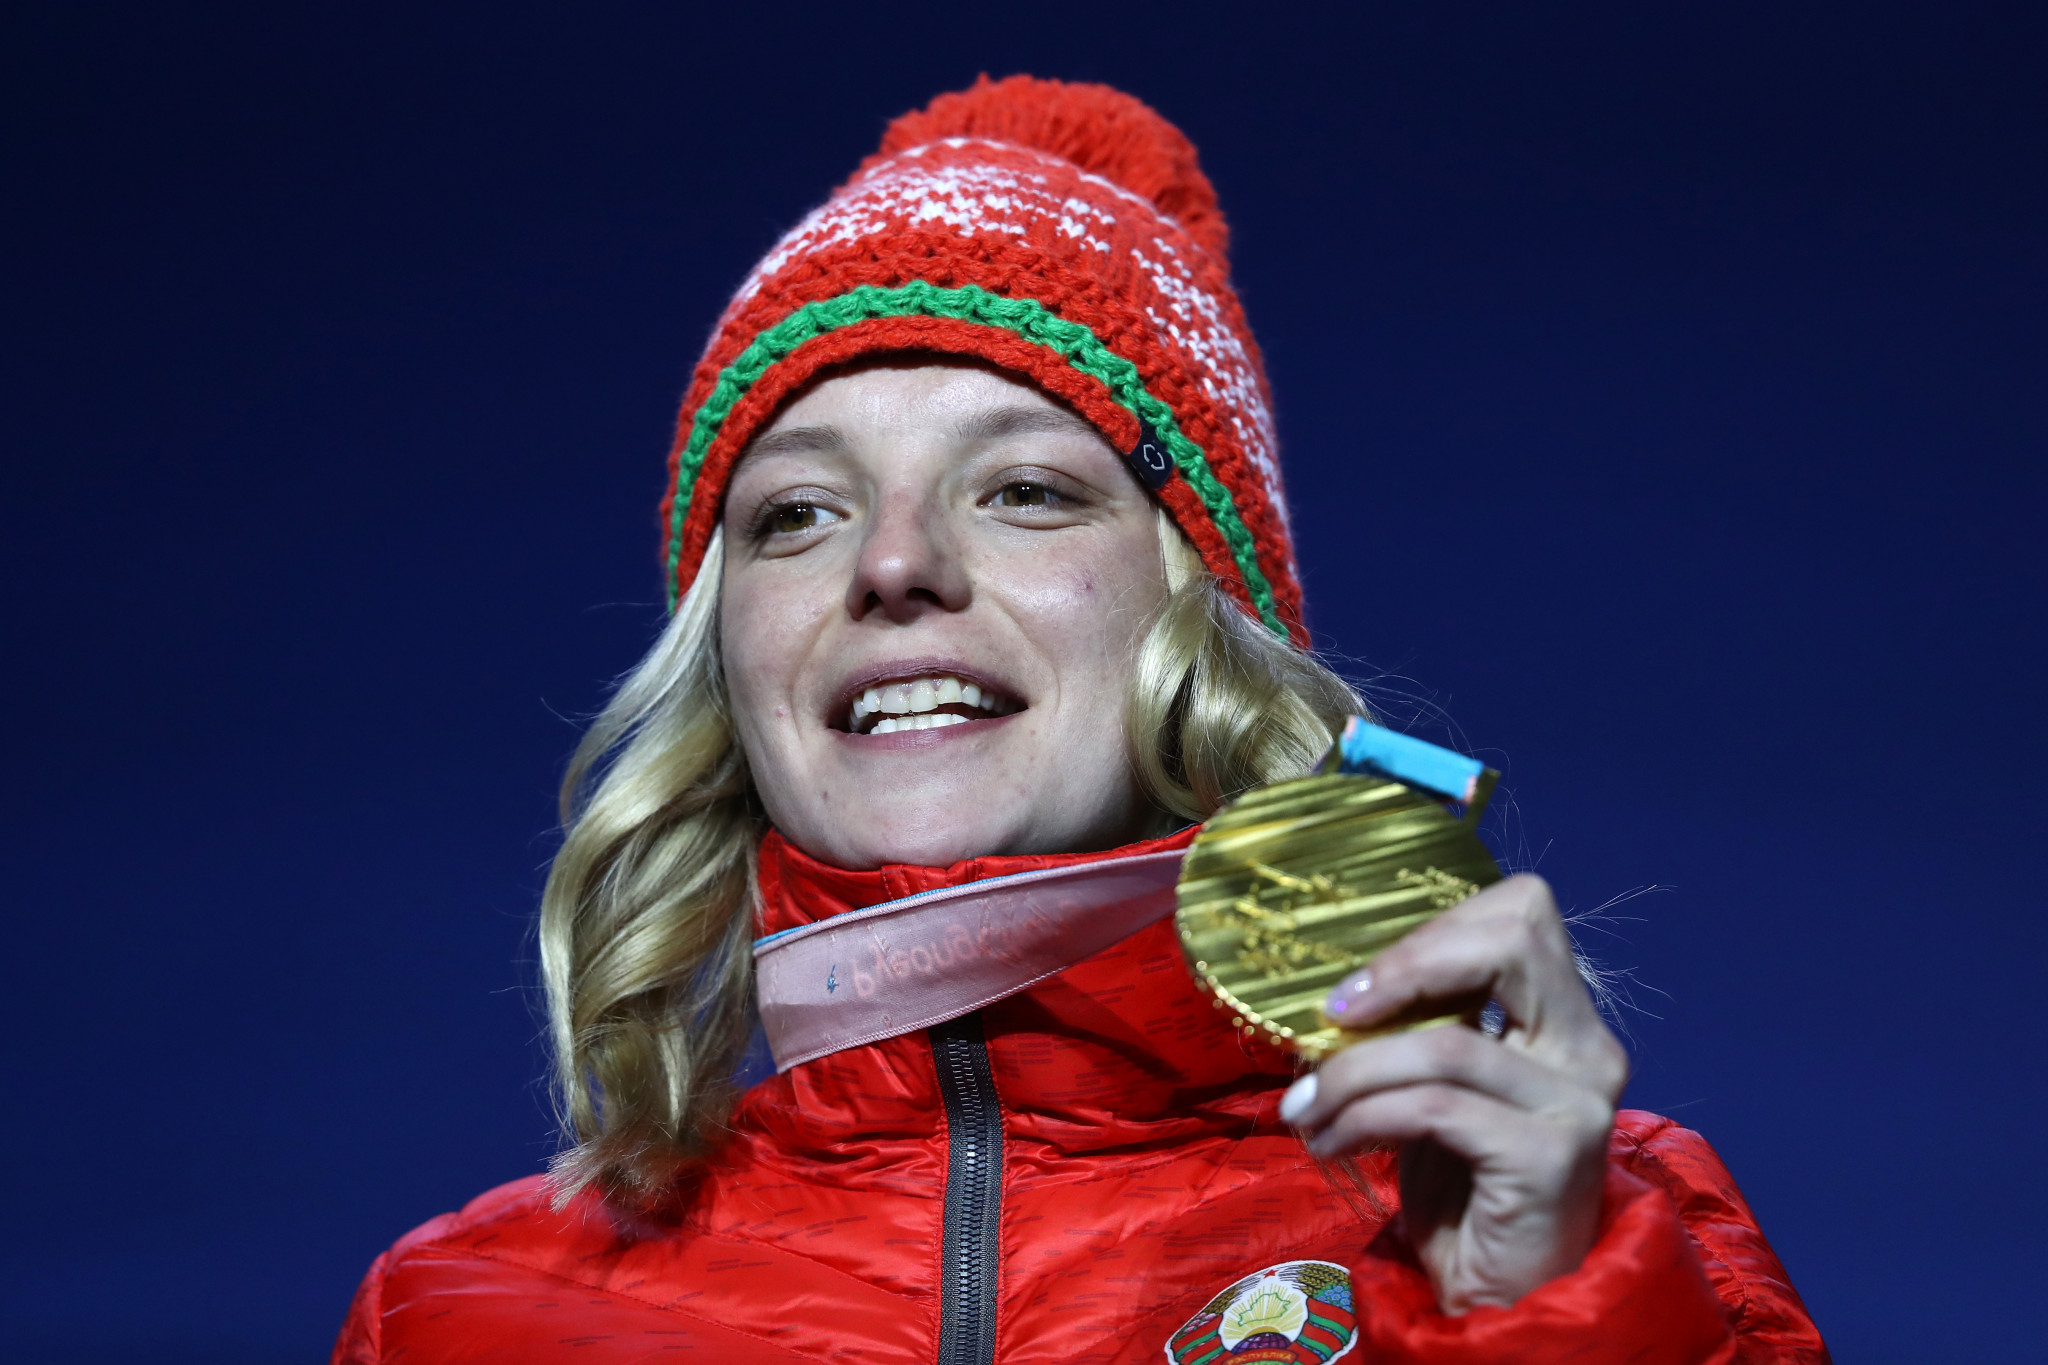 Olympic aerials champion Hanna Huskova won last time out in Moscow to take her first World Cup win of the season ©Getty Images